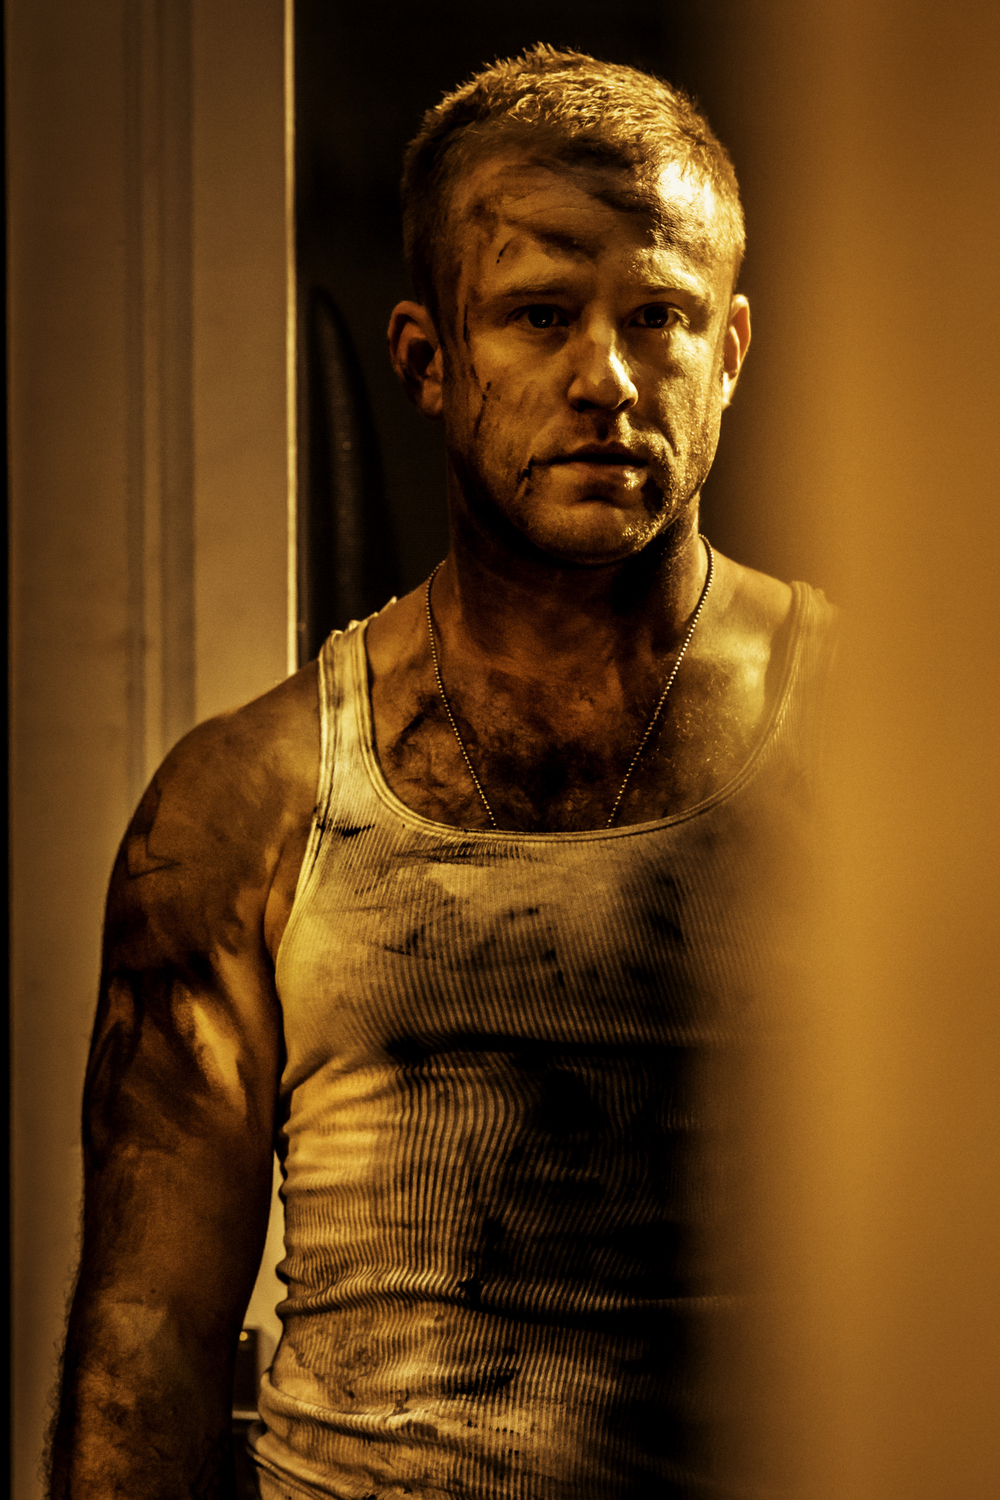 8_Ben_Foster_as_Stanley_Kowalski_in_A_Streetcar_Named_Desire_at_the_Young_Vic_Photo_by_Johan_Persson-02758-1.jpg